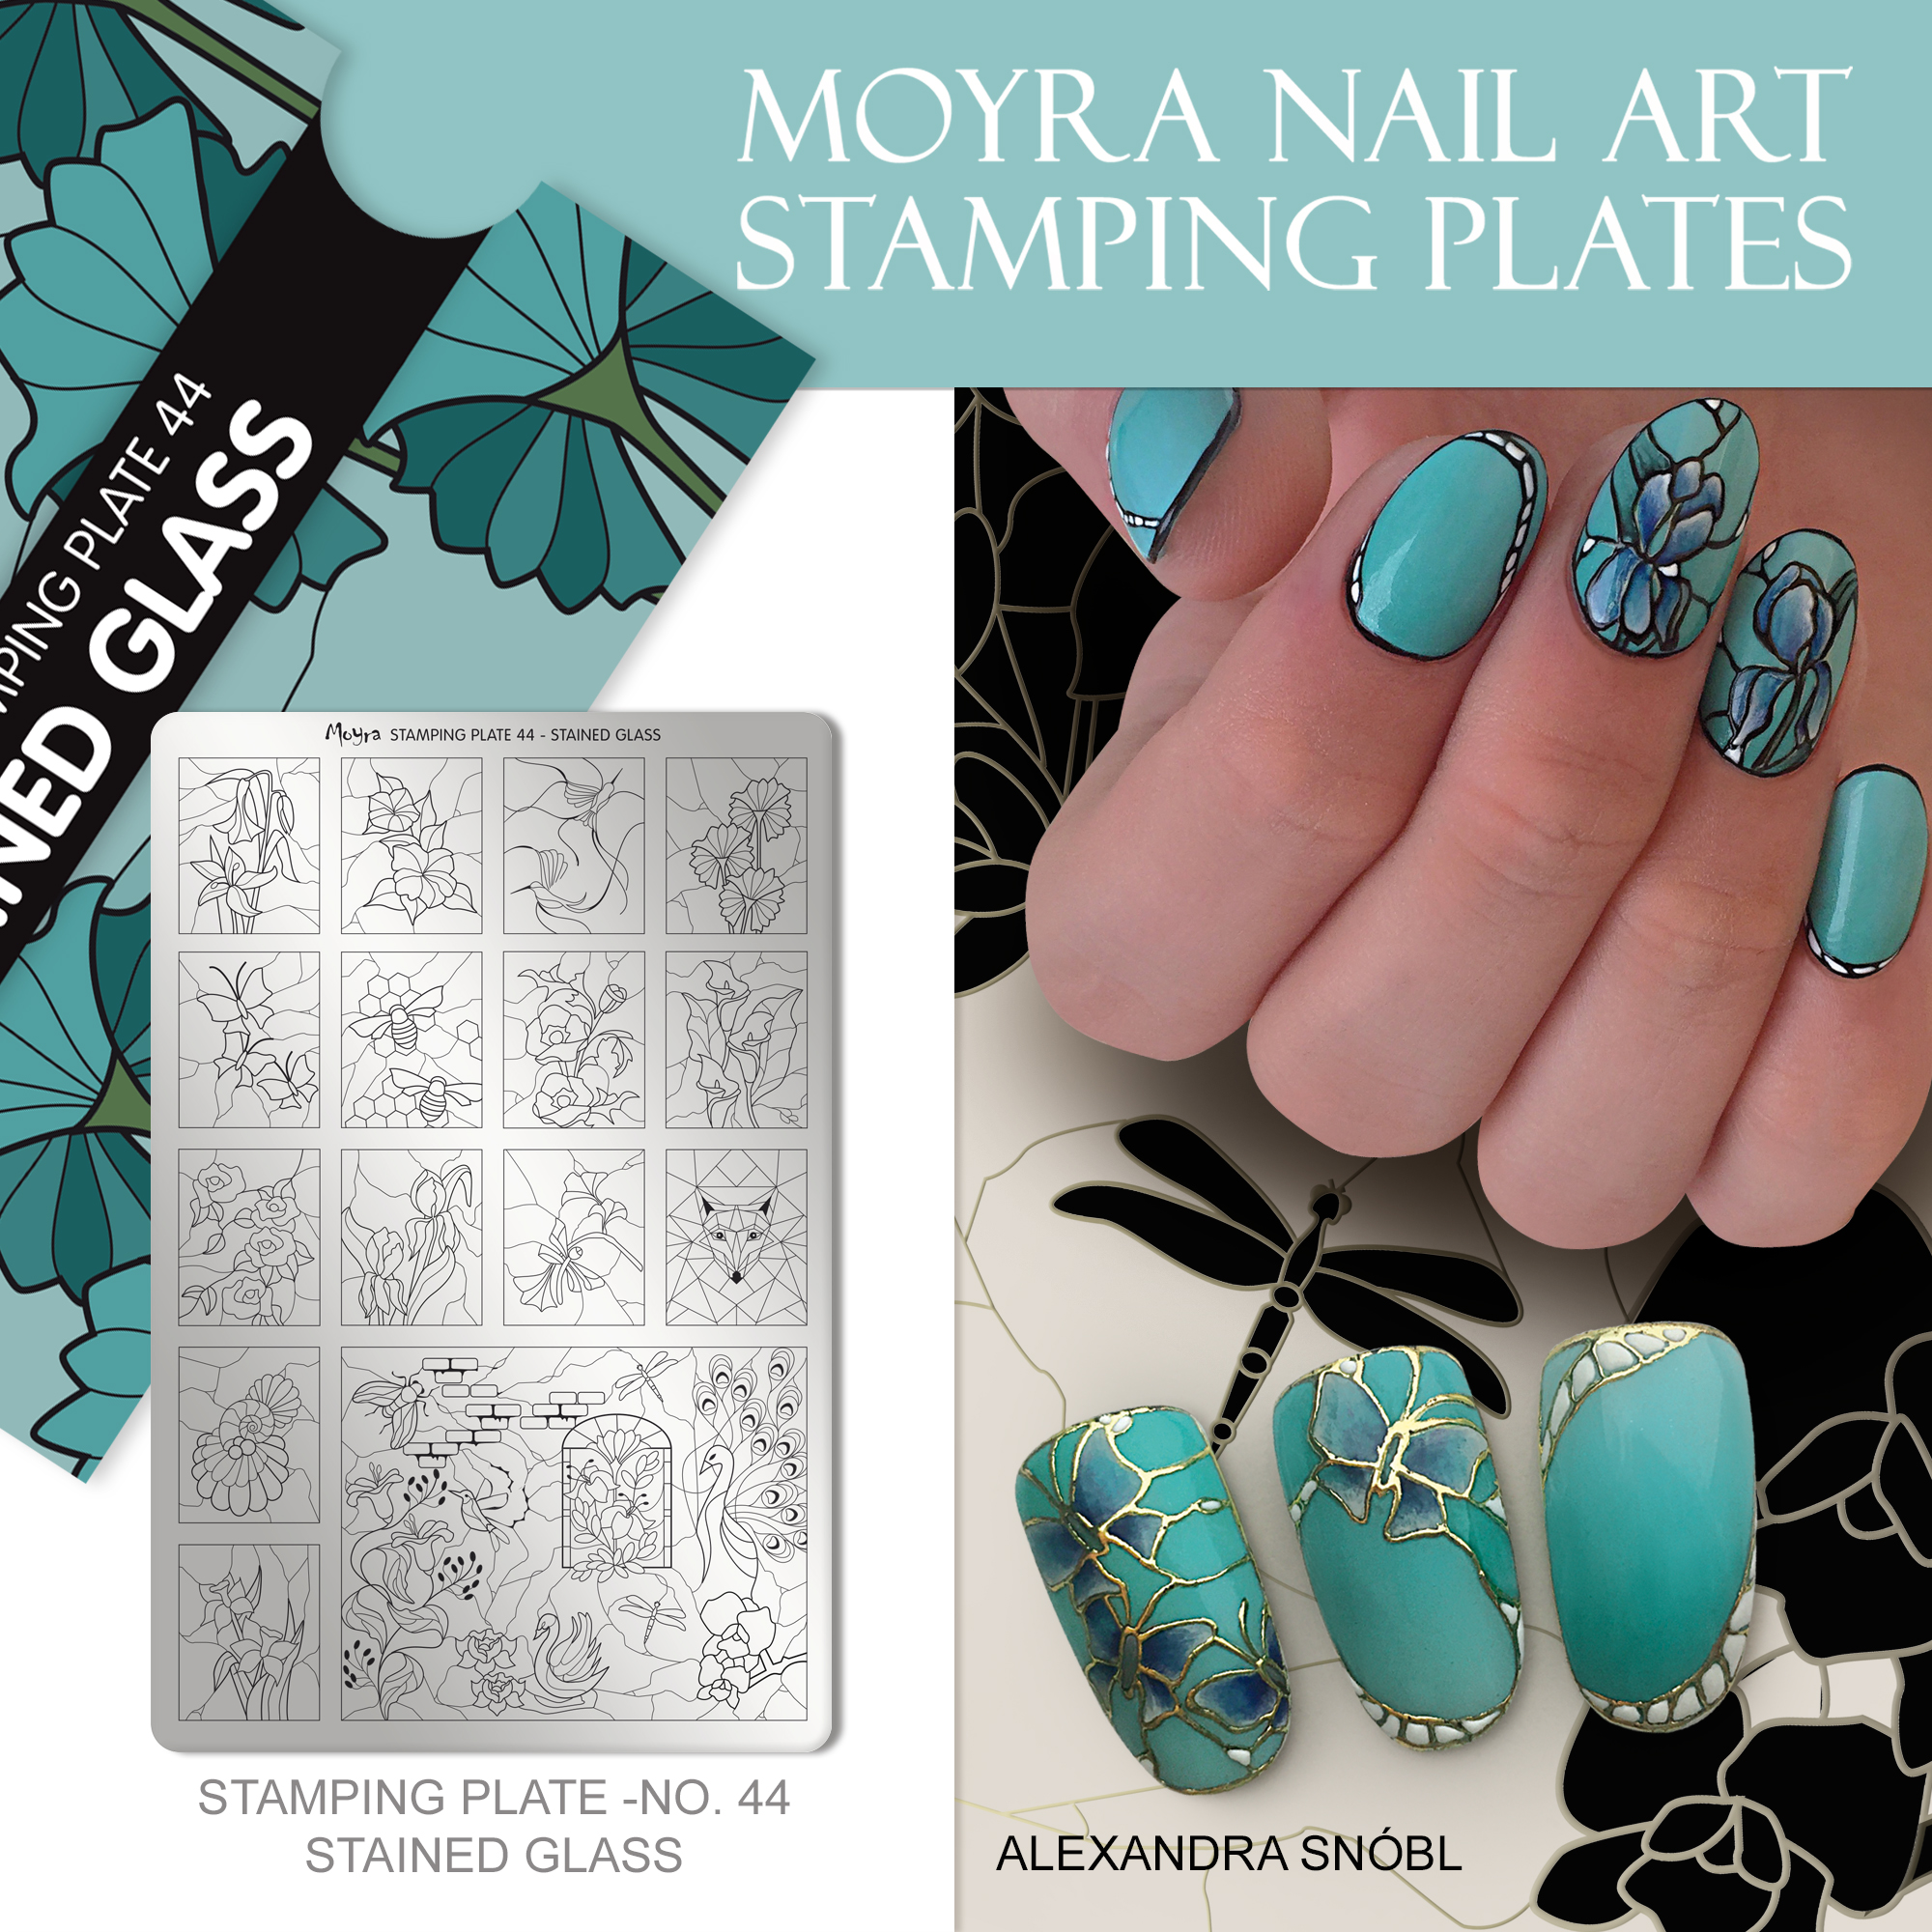 Moyra Nail Art Stamping Plate No. 44 Stained glass